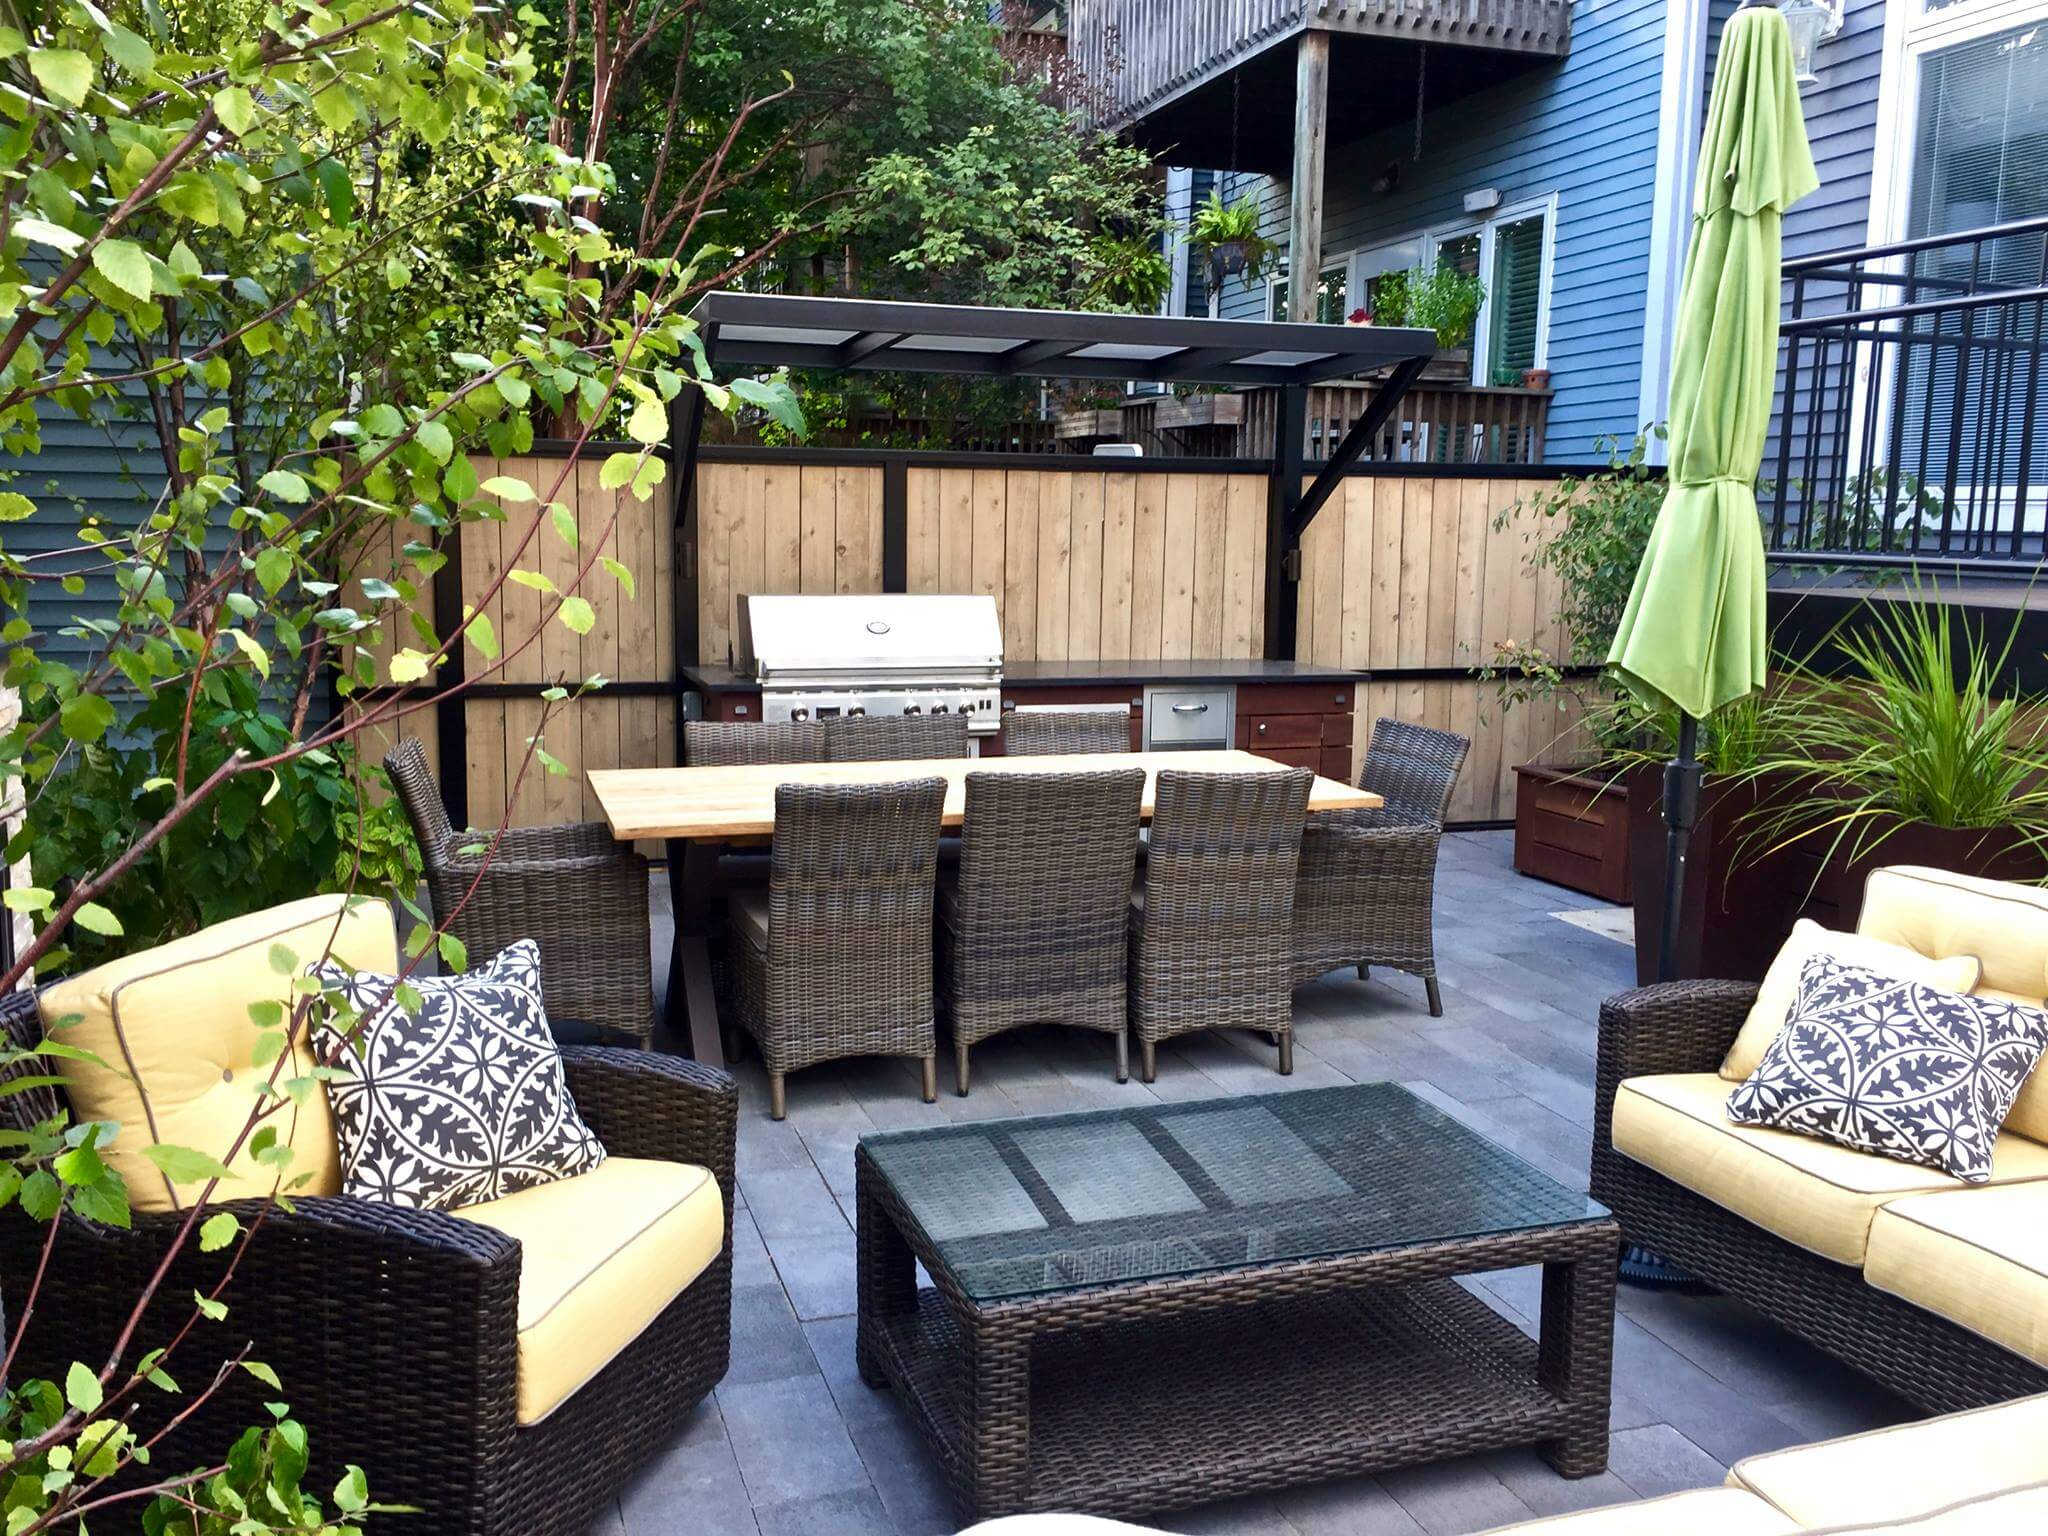 Backyard patio space with furniture and gas grill buffet lincoln park